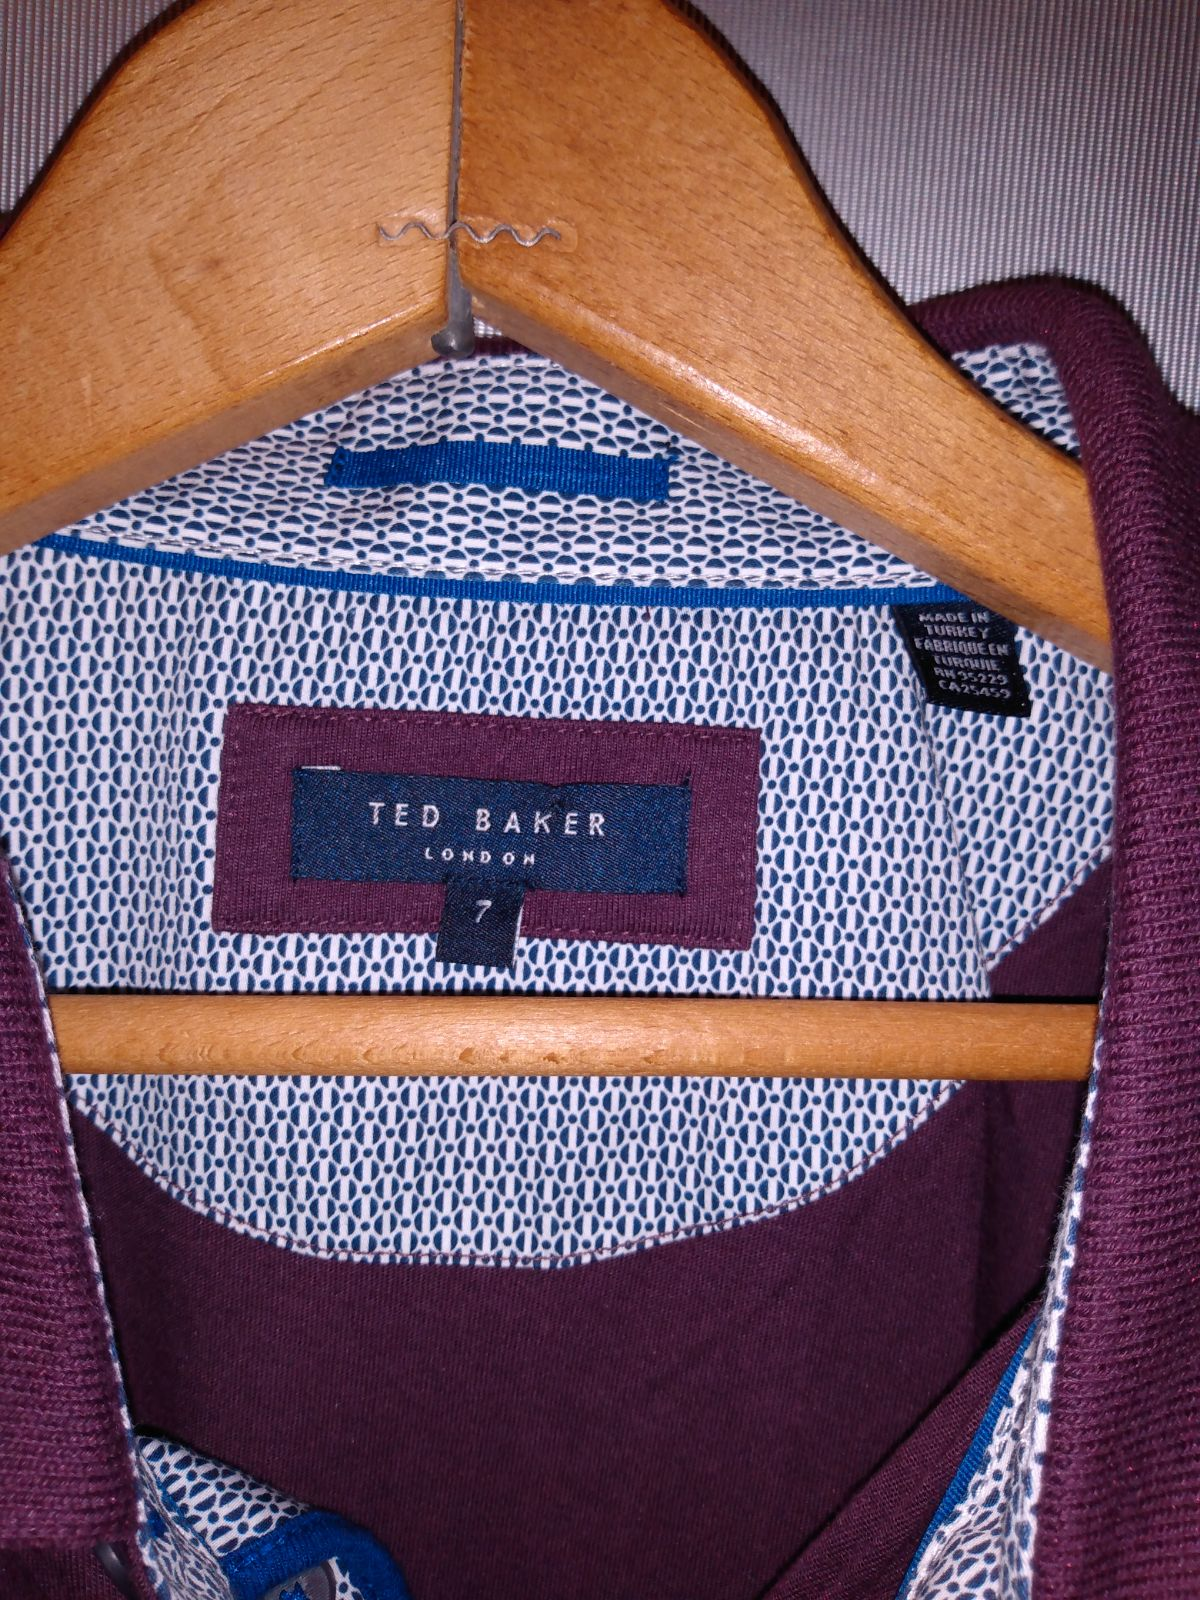 TED BAKER Mens POLO SHIRT SIZE 7 Purple